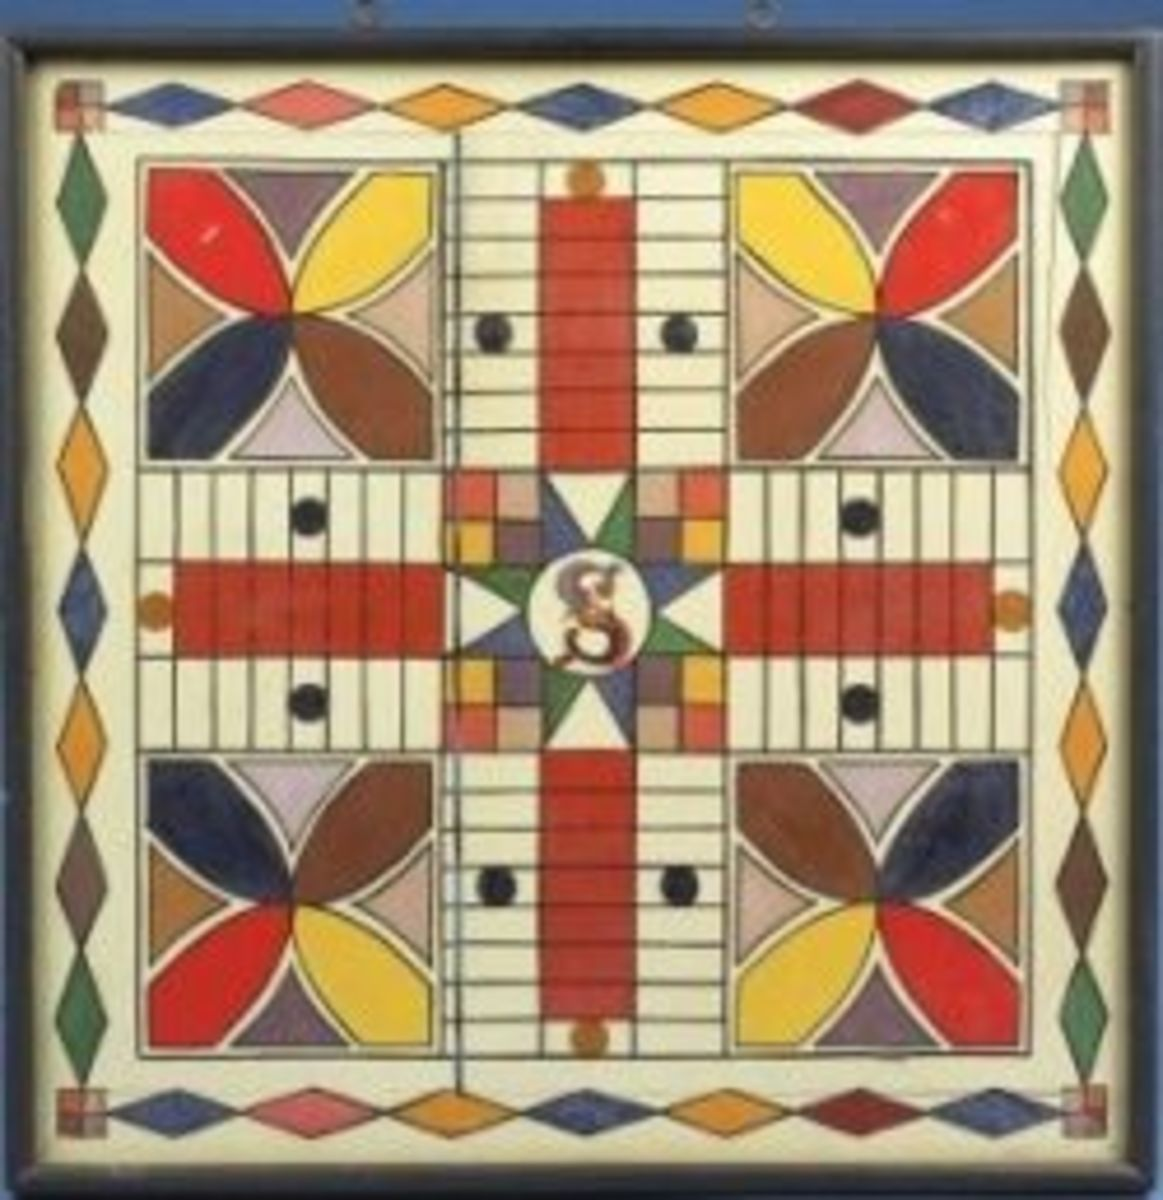 Antique Painted Parcheesi Gameboard (19â³ Square) sold by Northeast Auctions for $11,600.00